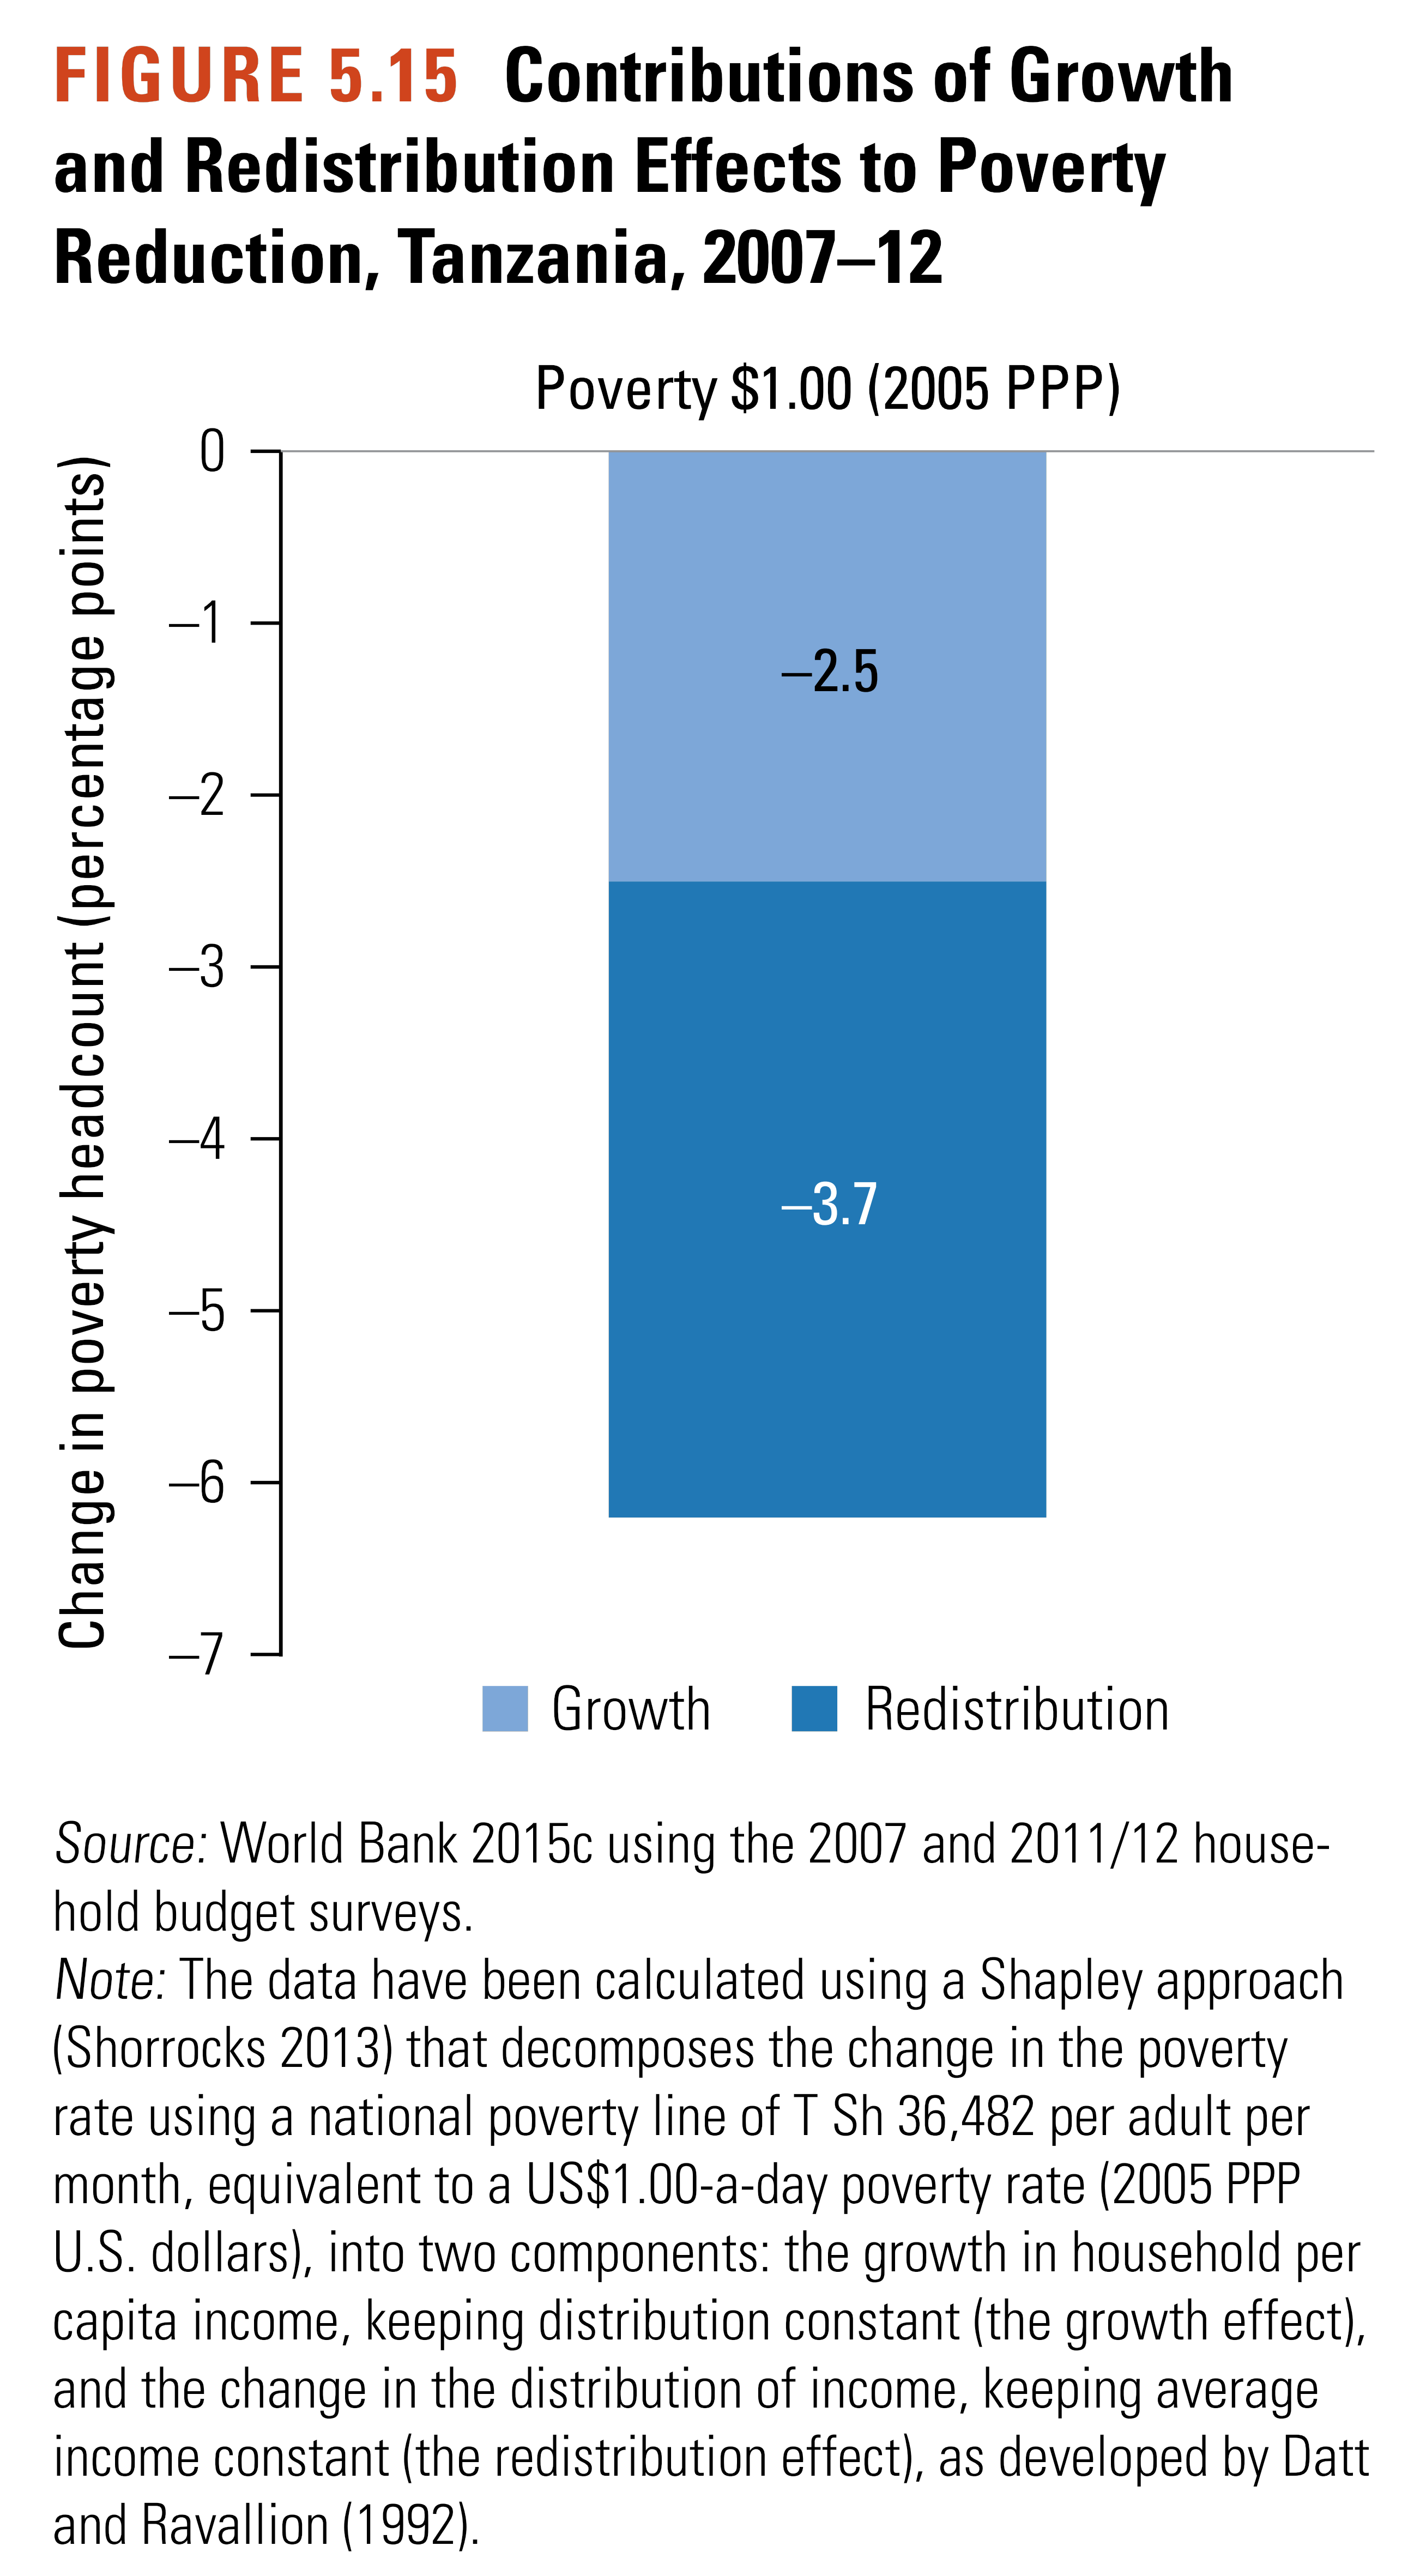 Reduction in Tanzanian poverty due to redistribution and growth